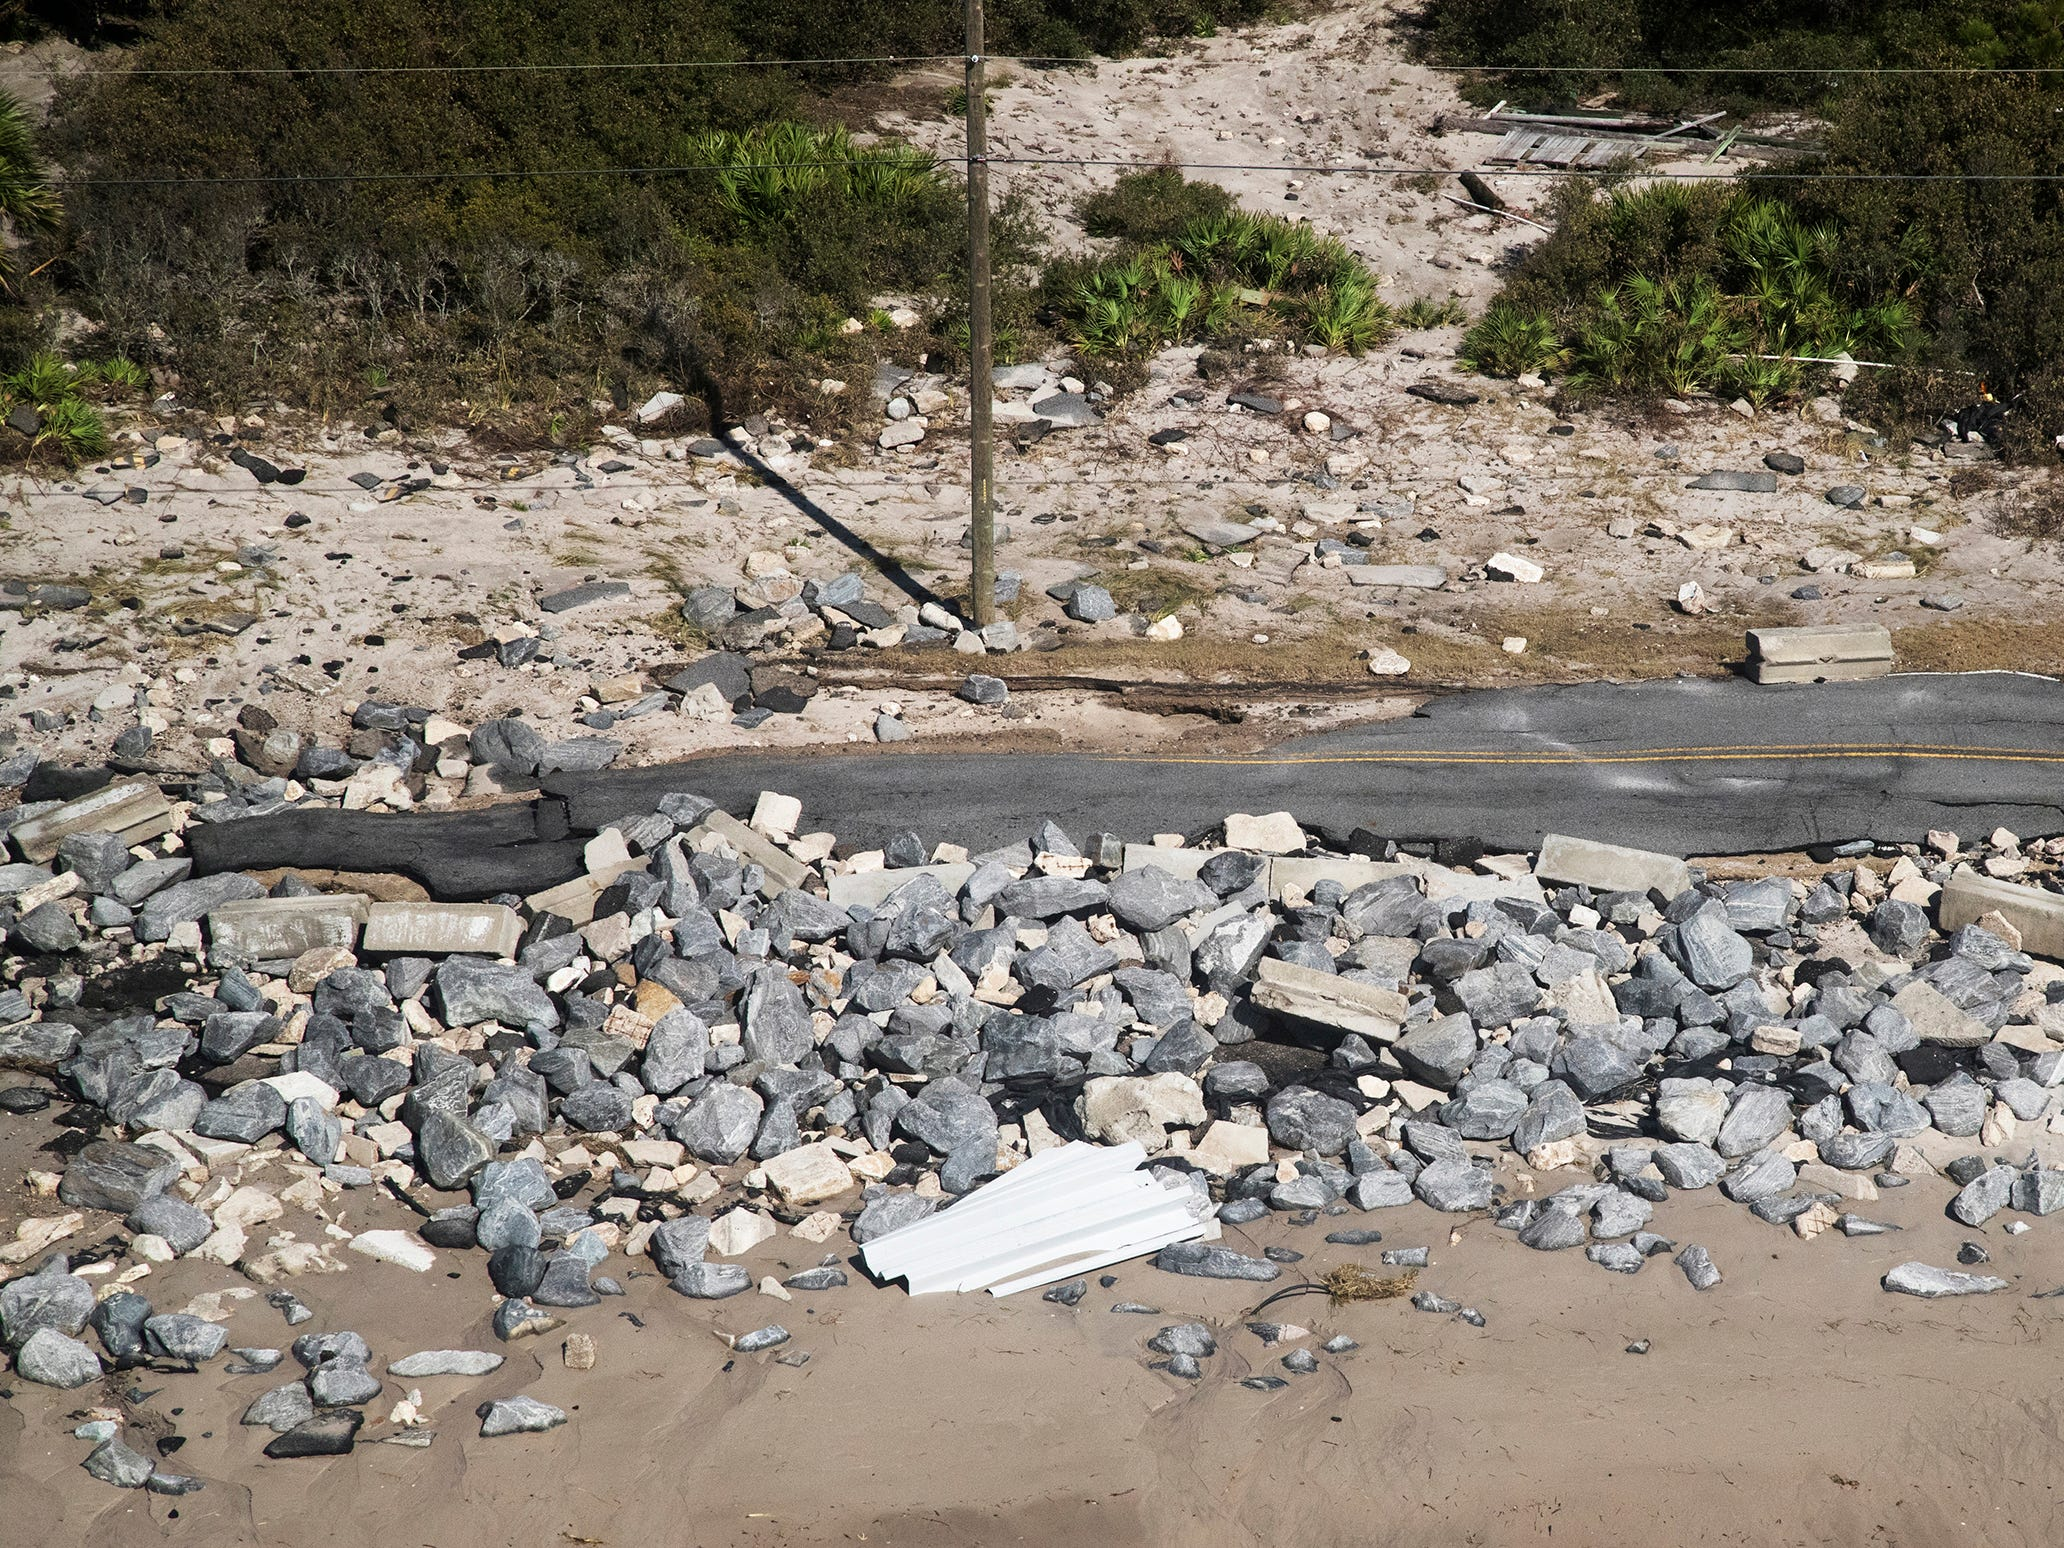 Hurricane Michael washed out portions of Highway 319 on Alligator Point in Franklin County, Florida.